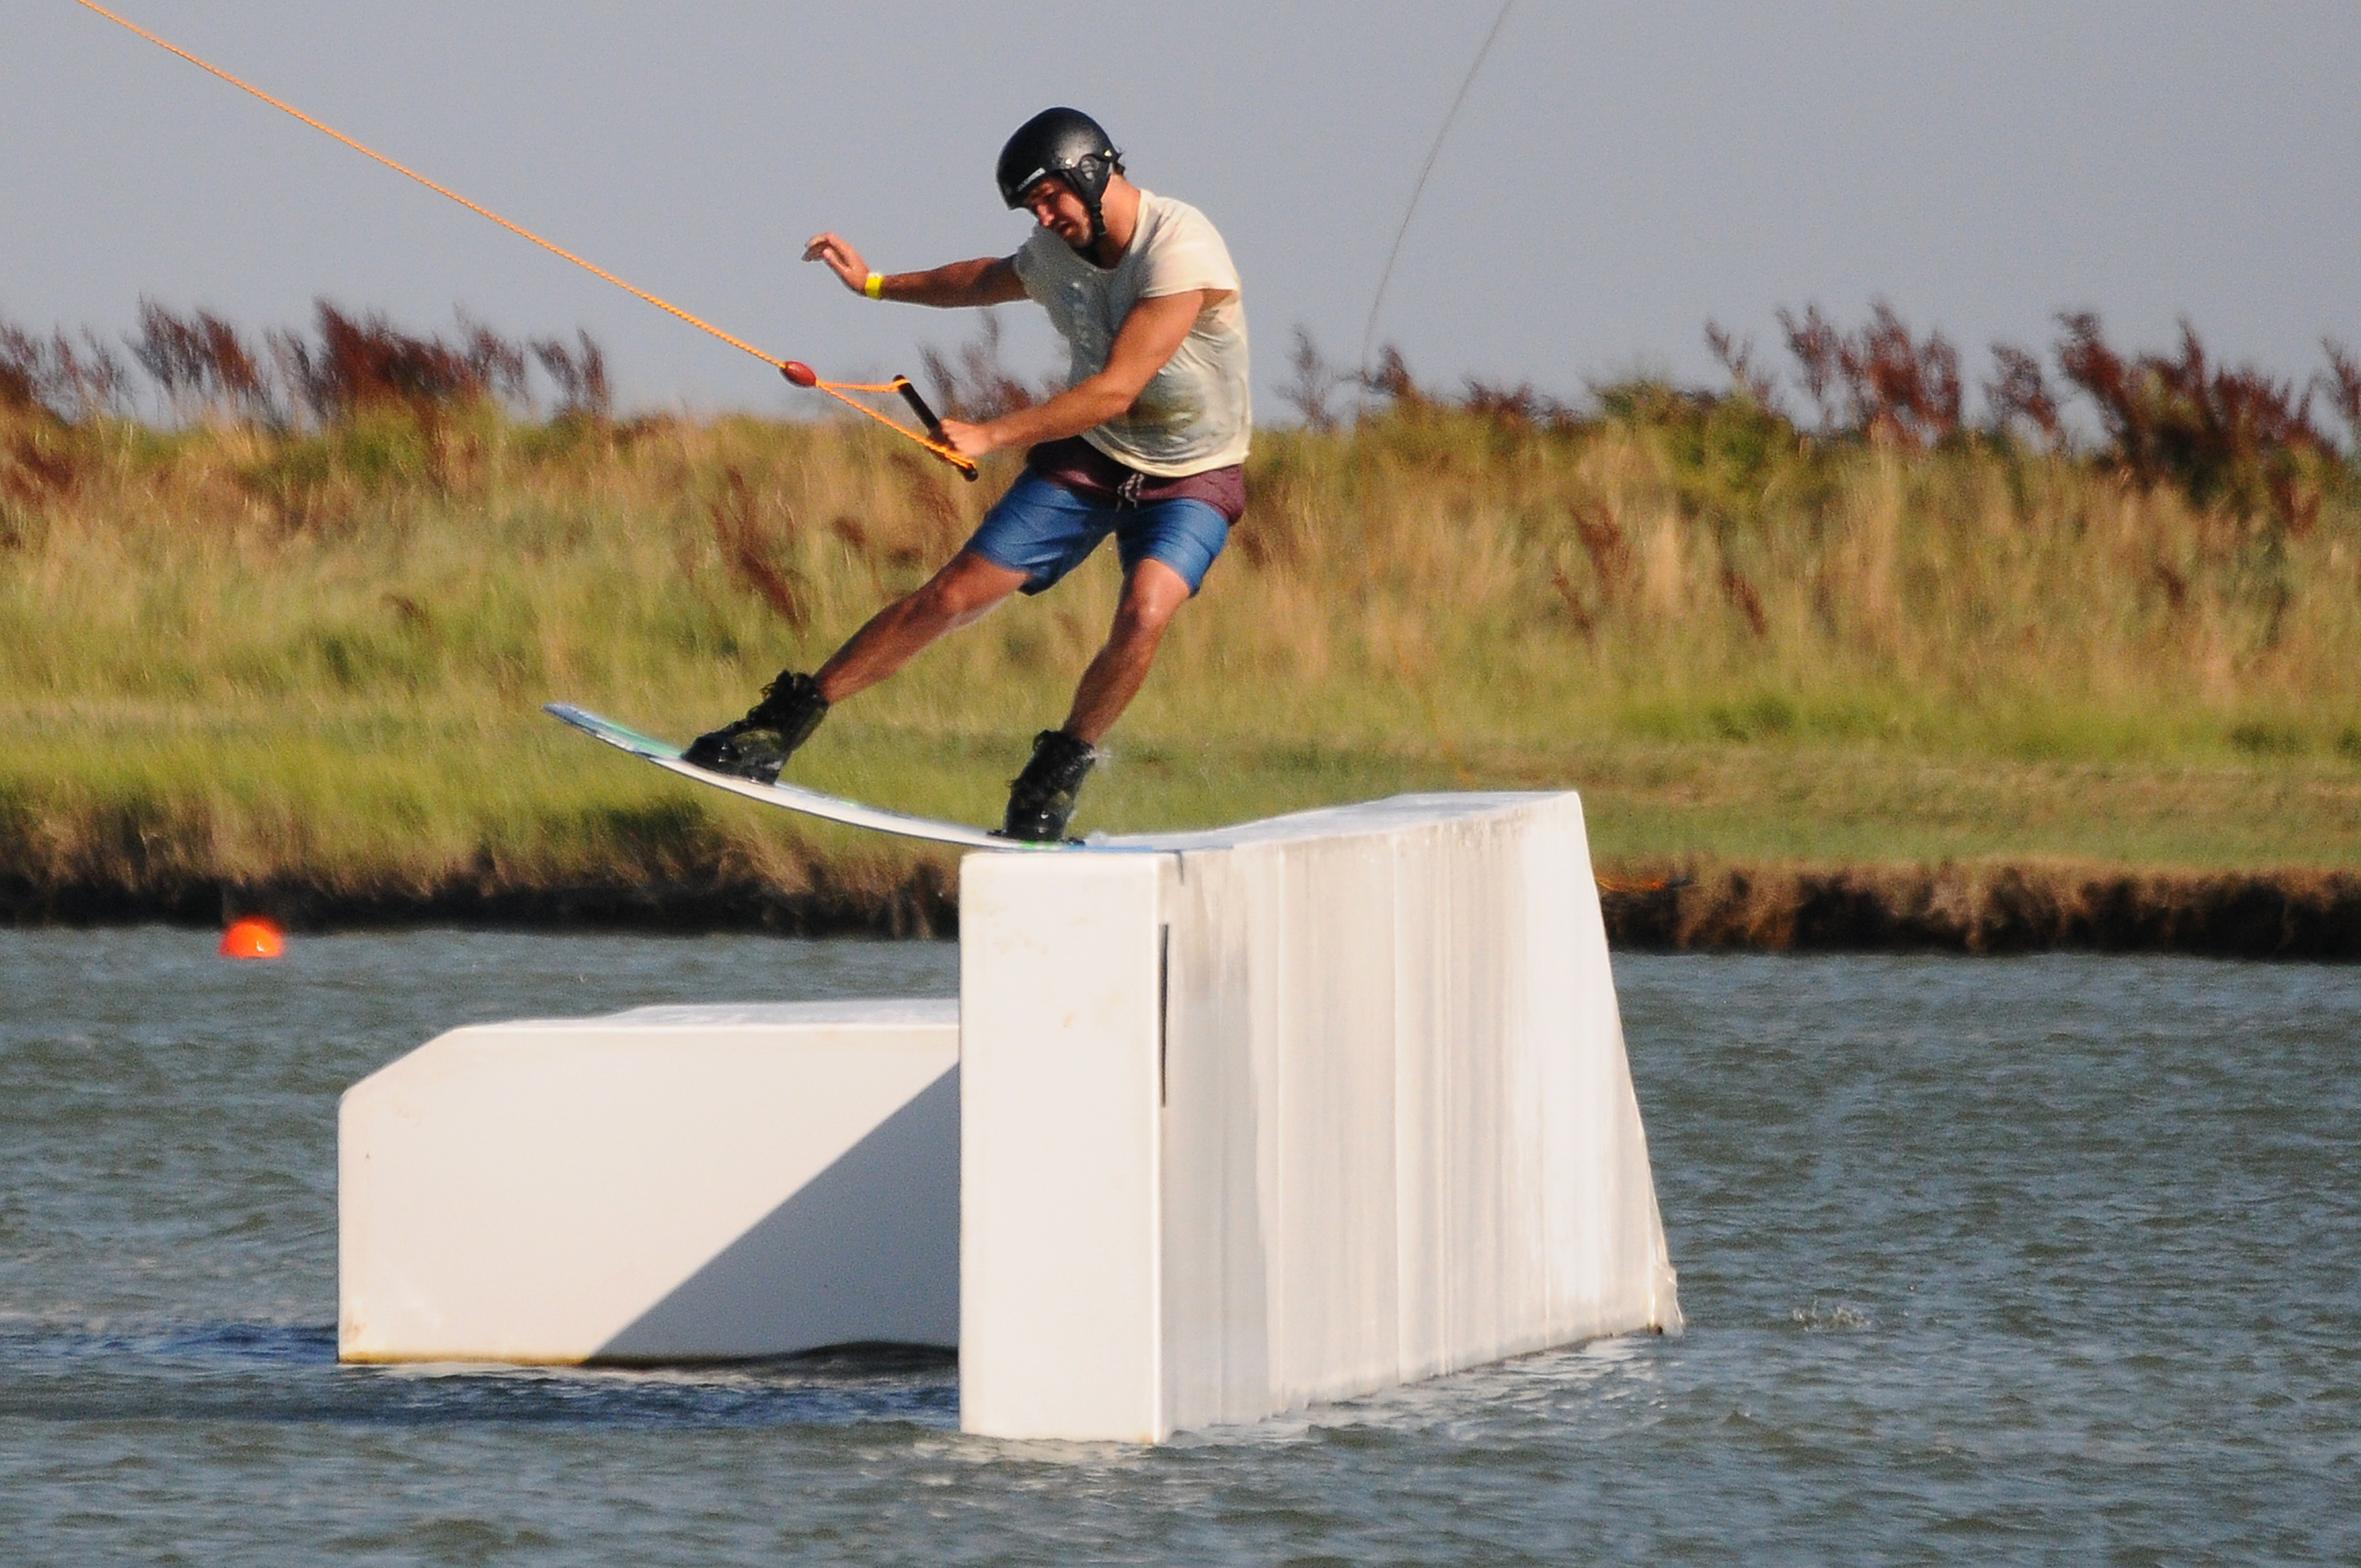 Teleski in Atlantic-Wakepark.